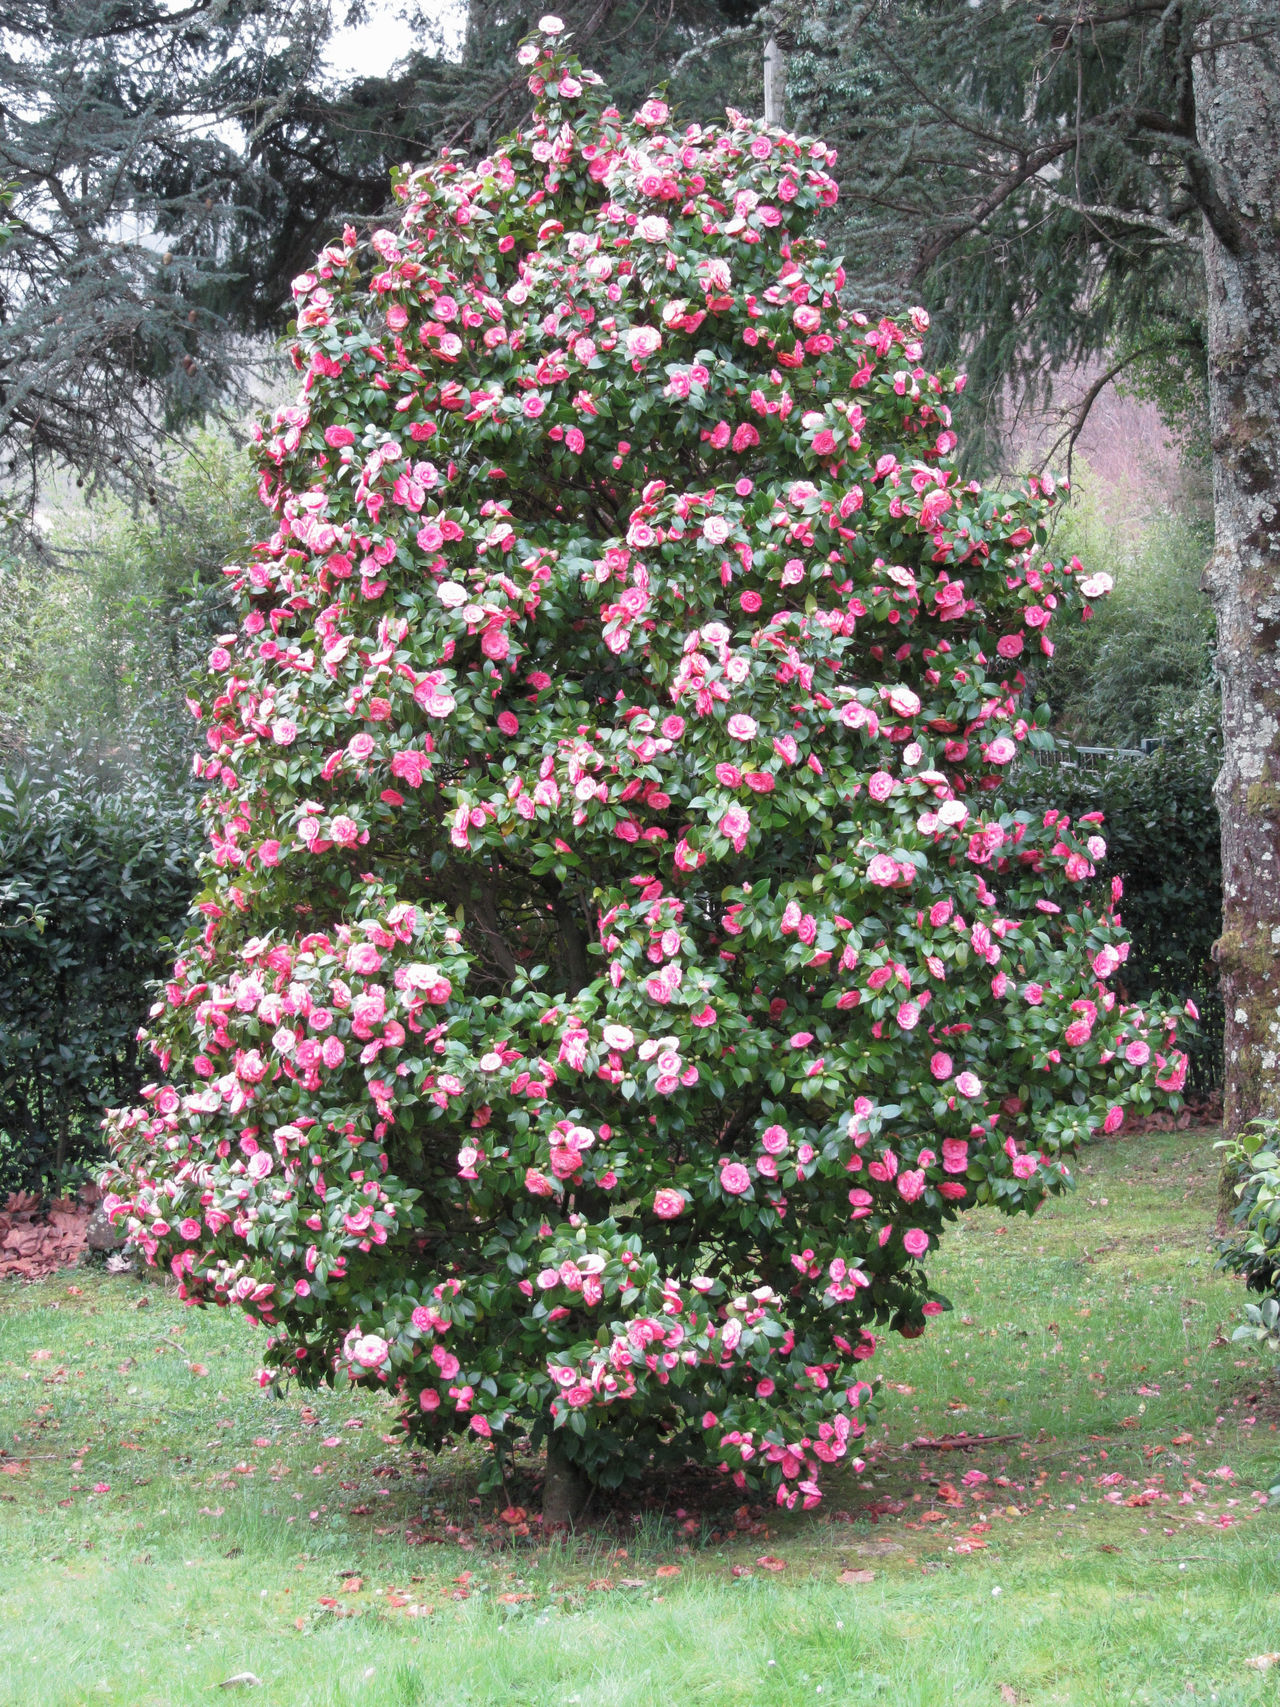 Ancient japanese cultivar of Camellia japonica flower . Evergreen shrub Ancient Anniversary Bloom Blooming Blossom Bush Camelia Camellia Camellia Japonica Celebration Cultivar Decorative Evergreen Flower Japanese  Ornamental Petal Plant Red Romantic Shrub Spring Theaceae Tree Wedding